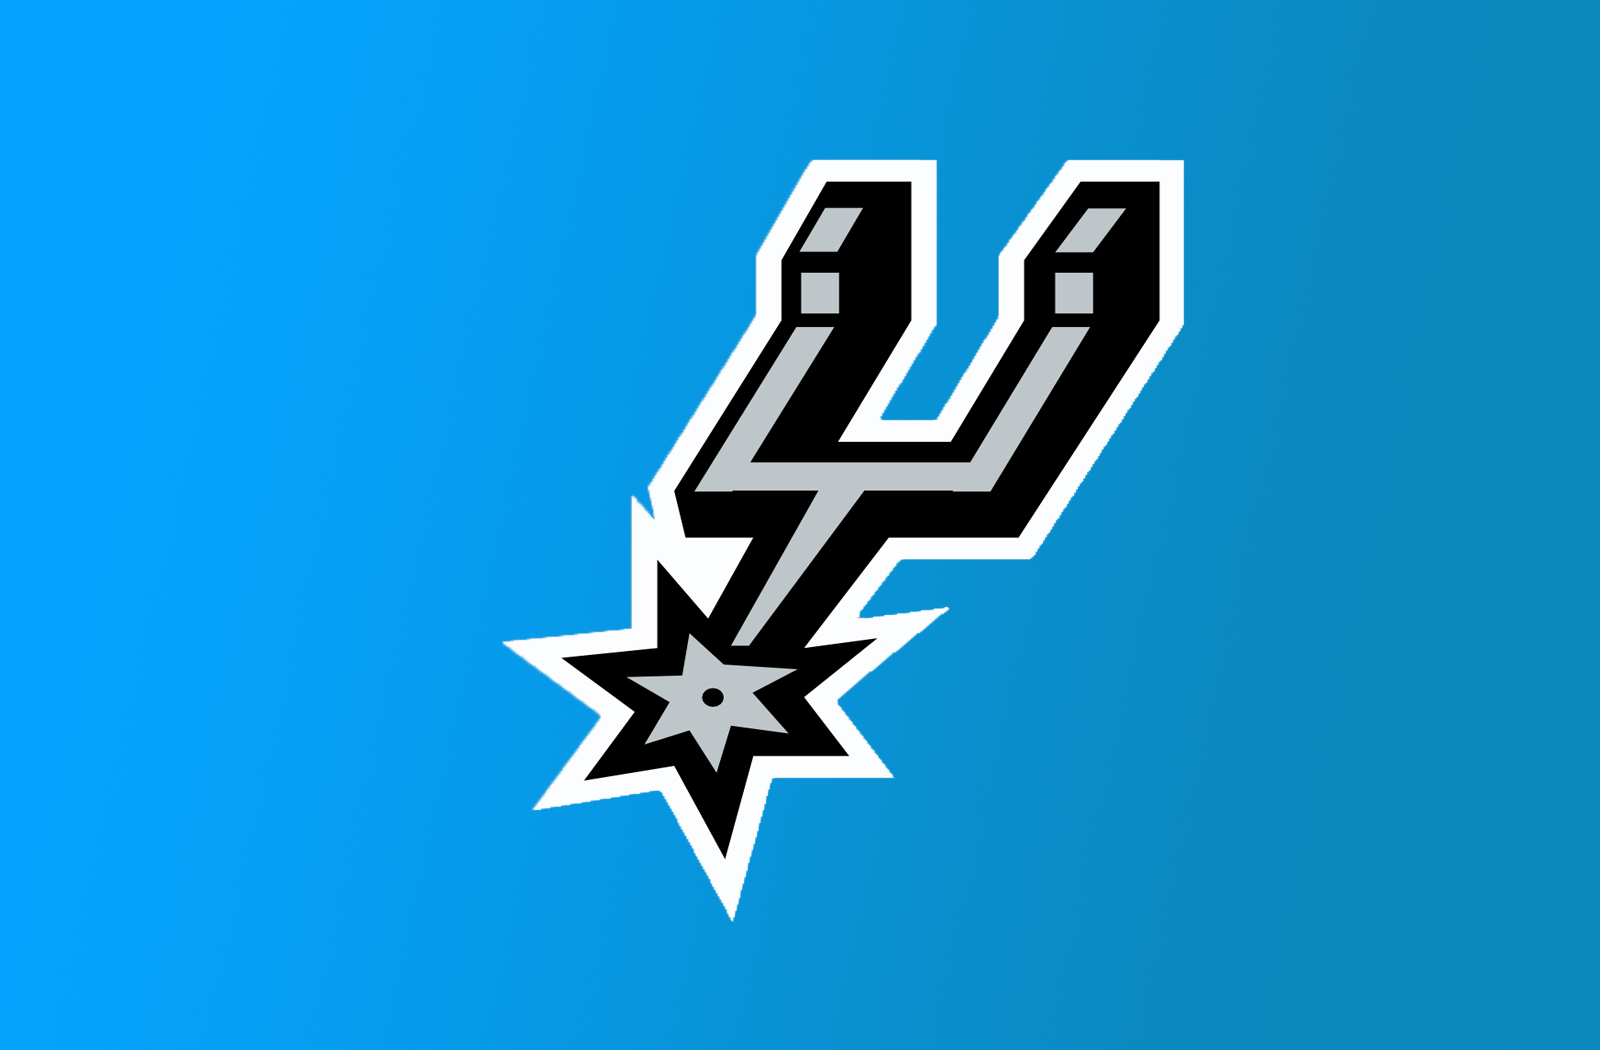 NBA Team San Antonio Spurs Logo Blue Background Wallpaper HD Desktop PC